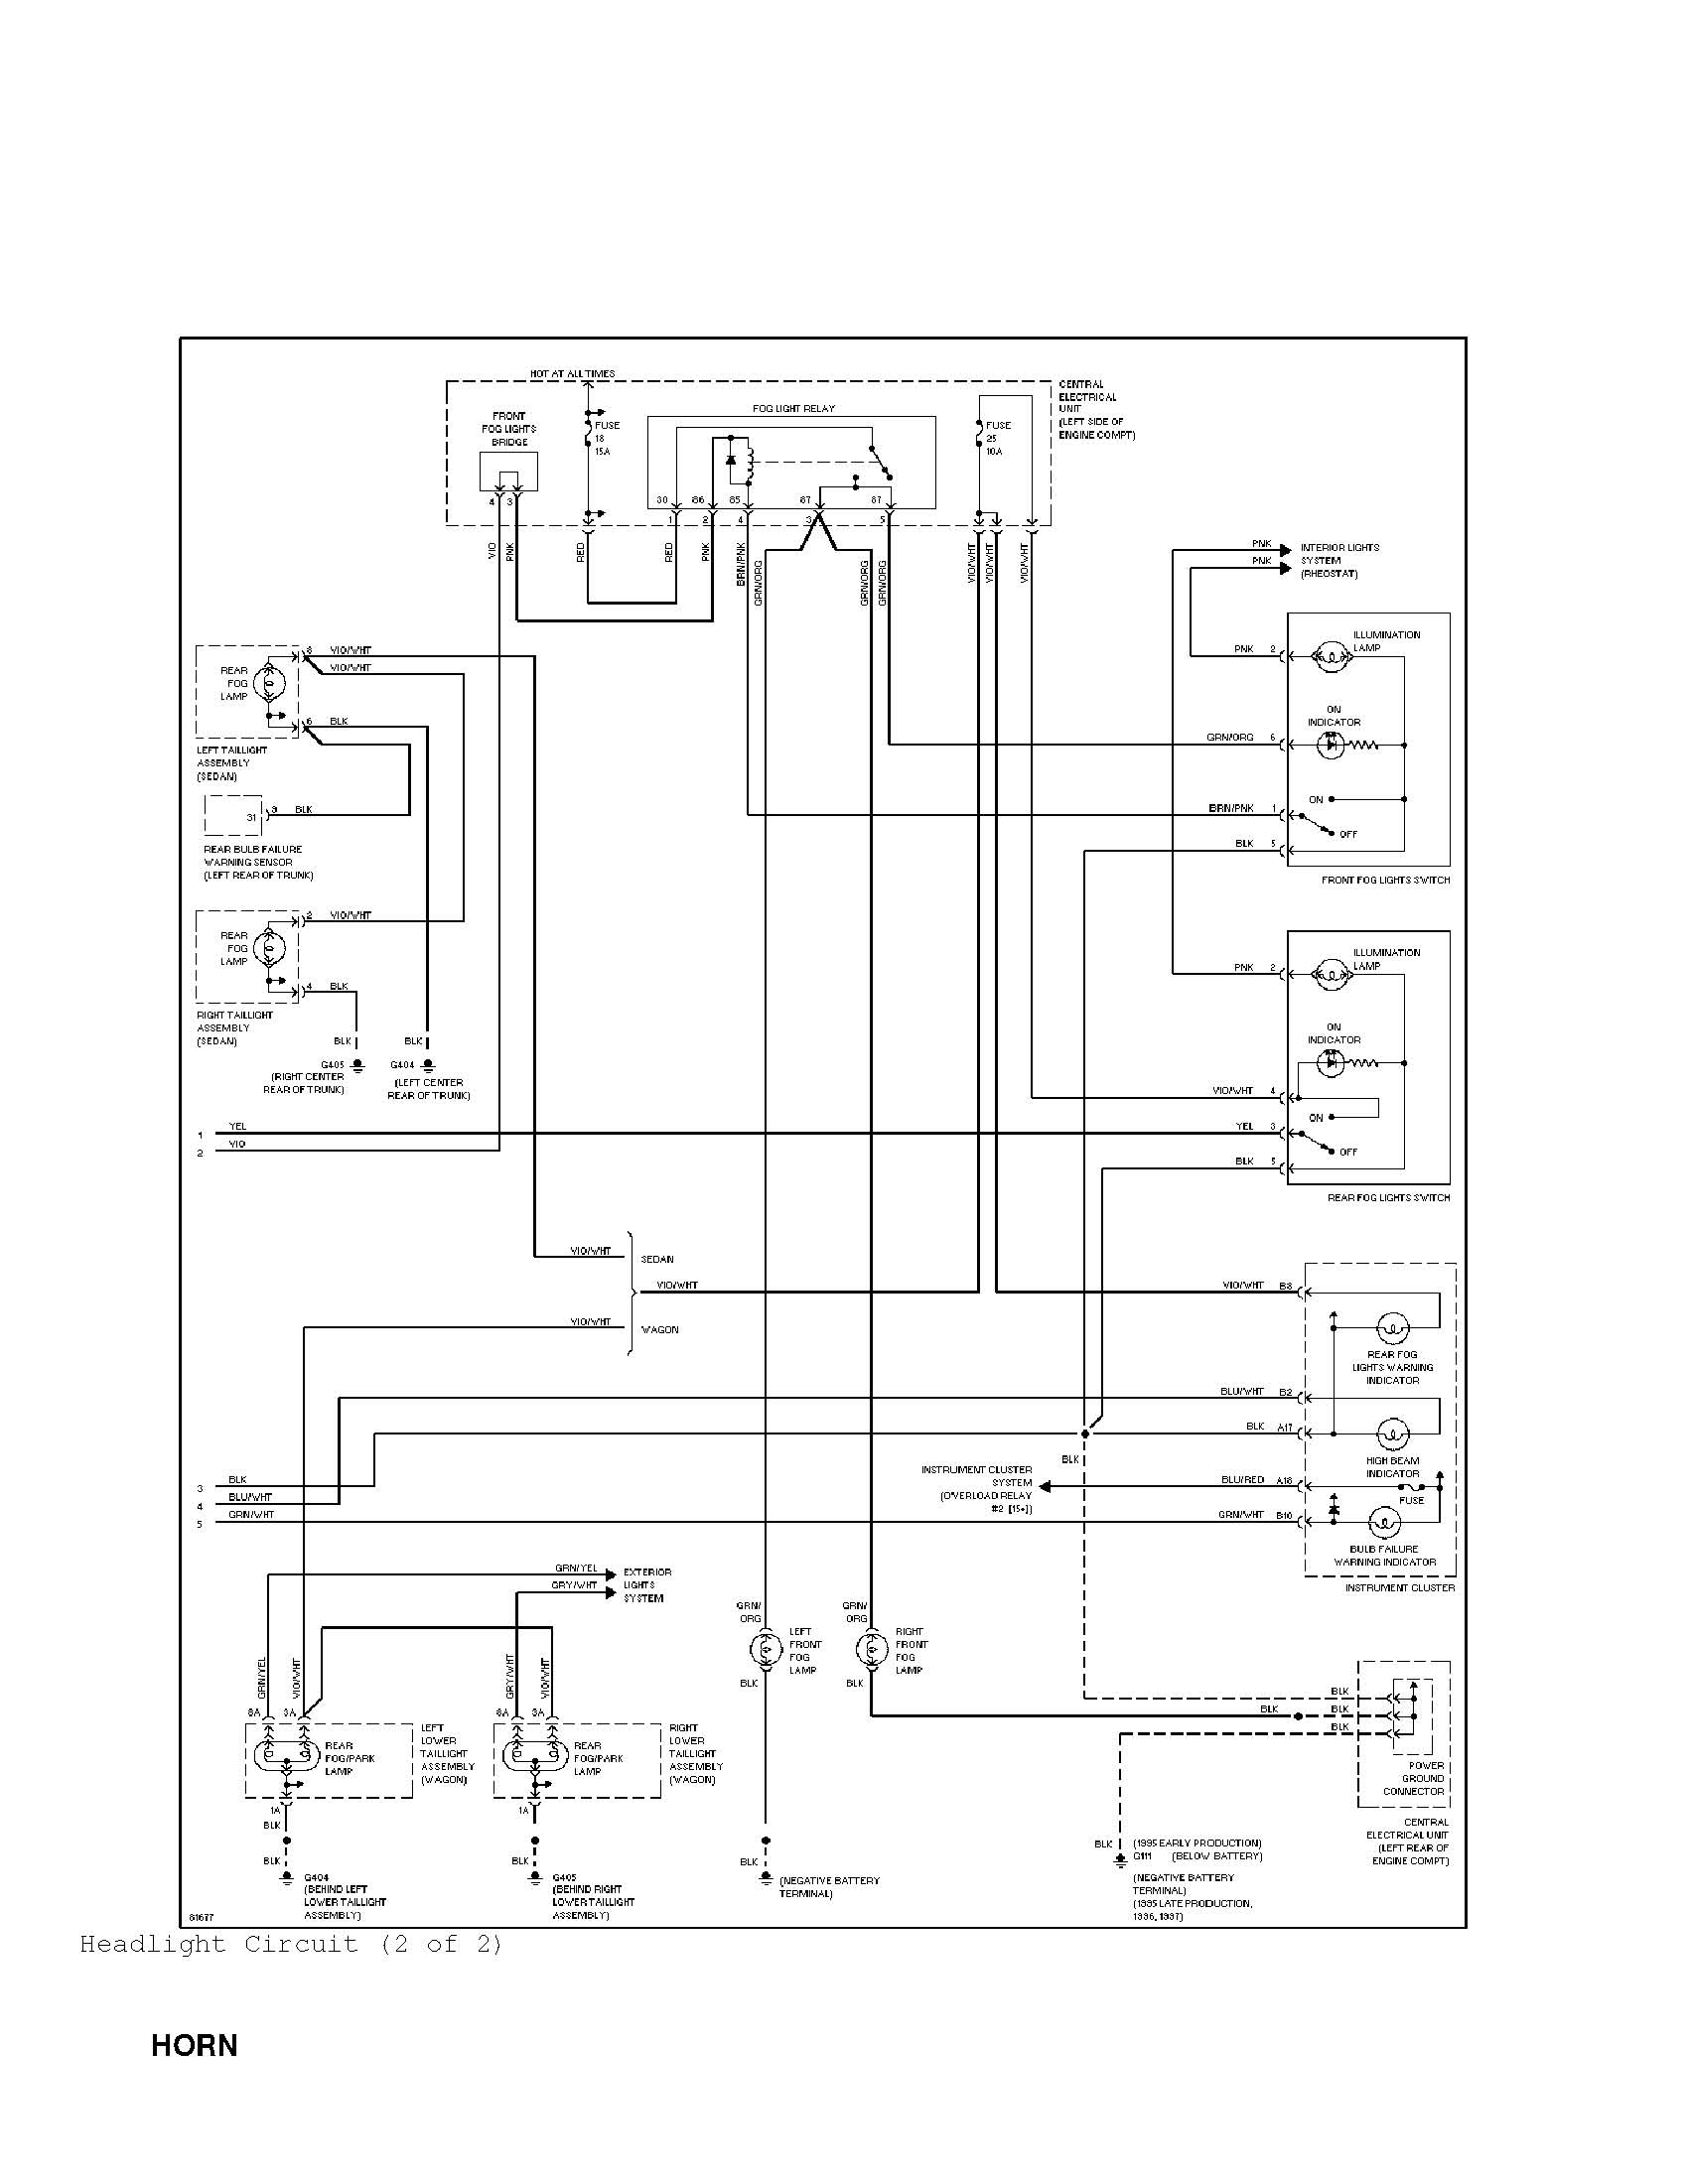 hight resolution of fog light installation page 2 cosmetic and detailing systemwiringdiagrams jpg here are the wiring diagrams for